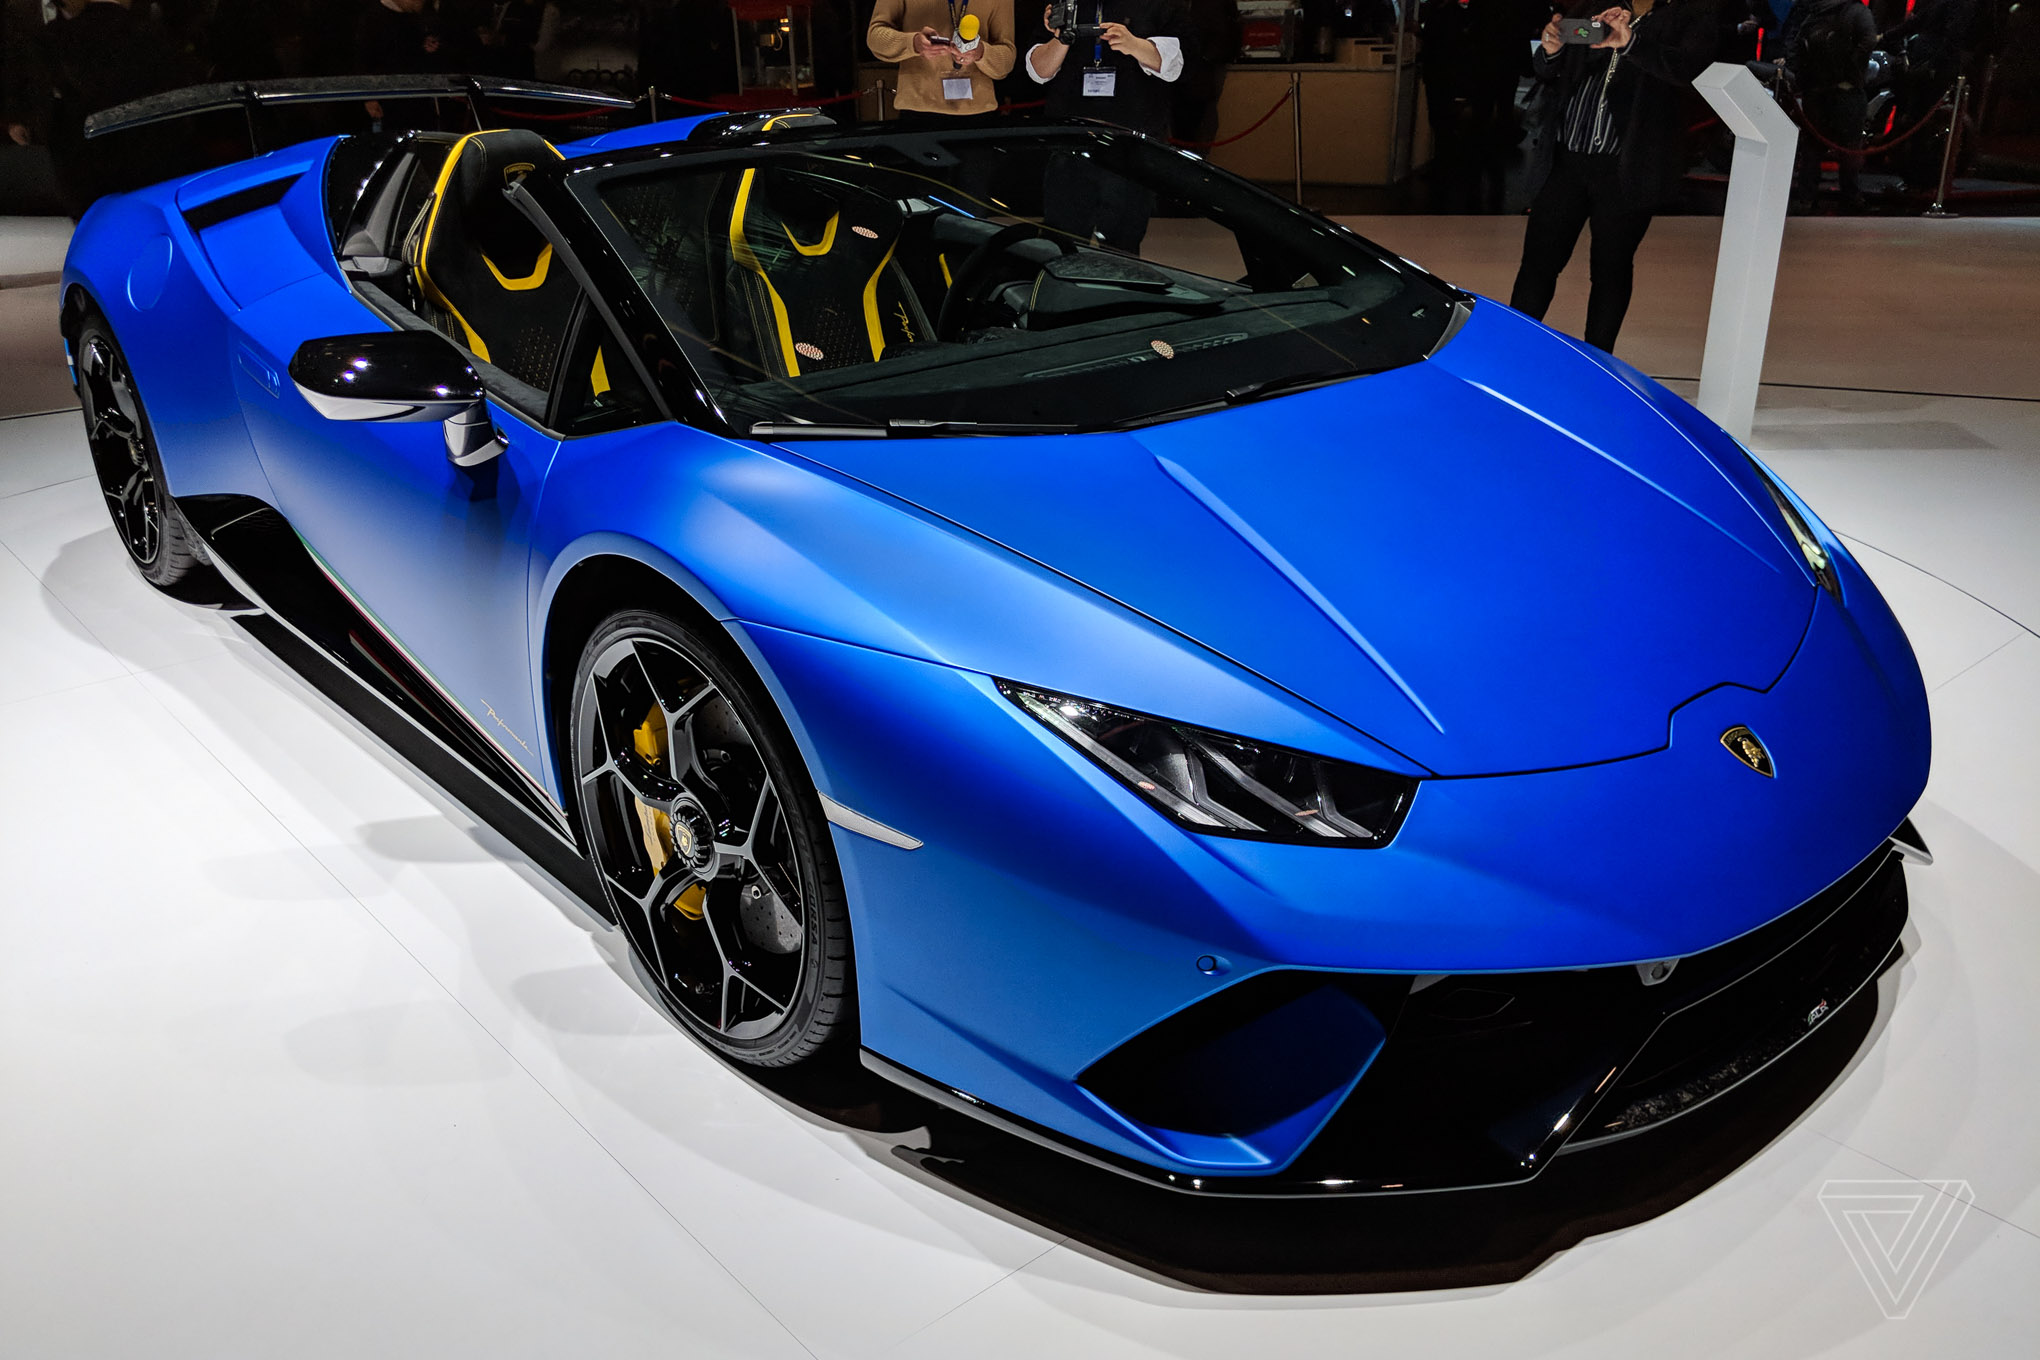 Lamborghini S Convertible Huracan Looks Stunning In Matte Blue The